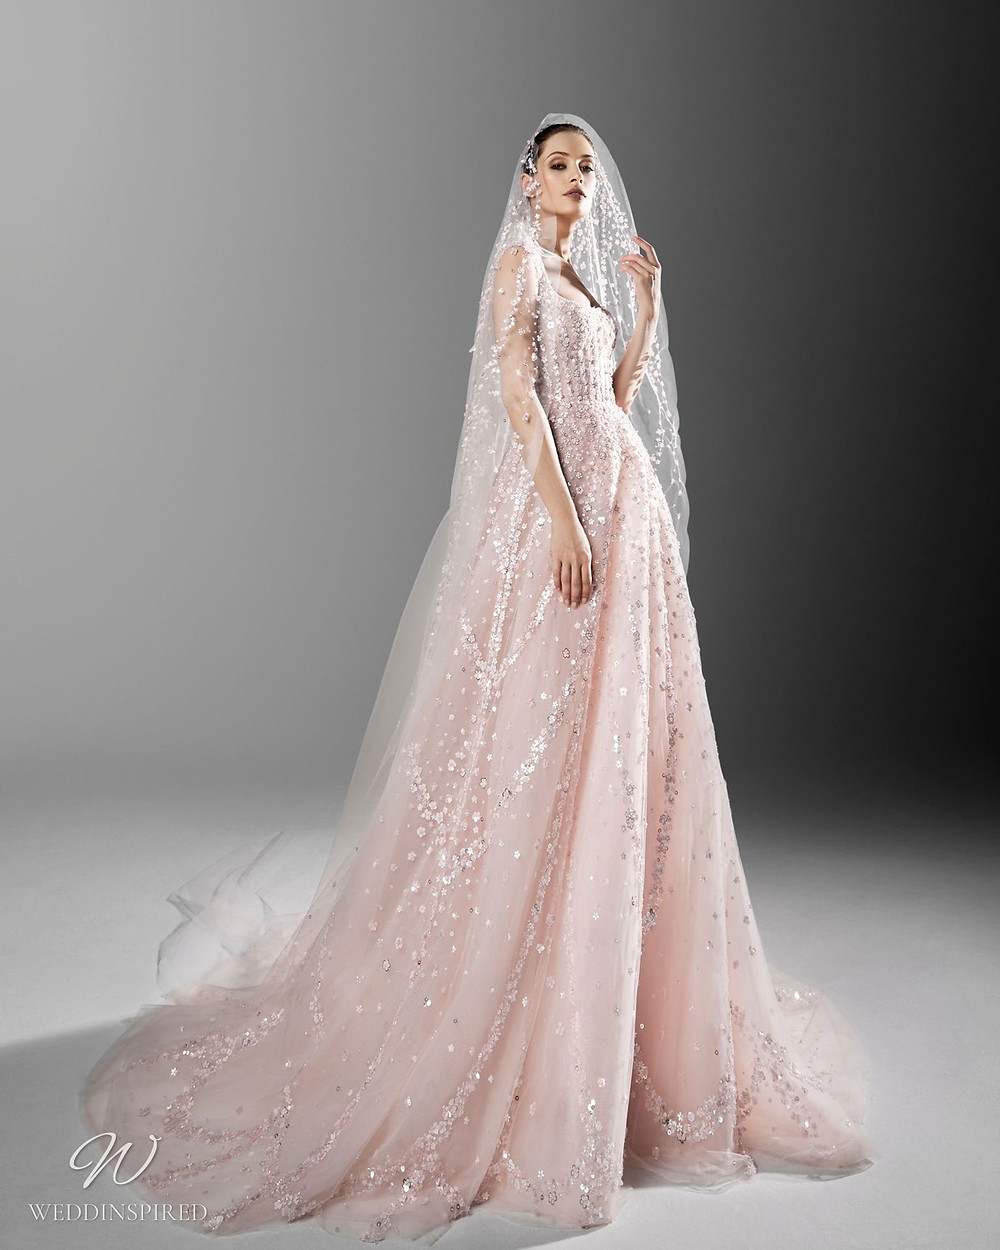 A Zuhair Murad romantic blush ball gown wedding dress with crystals, sparkles and a veil